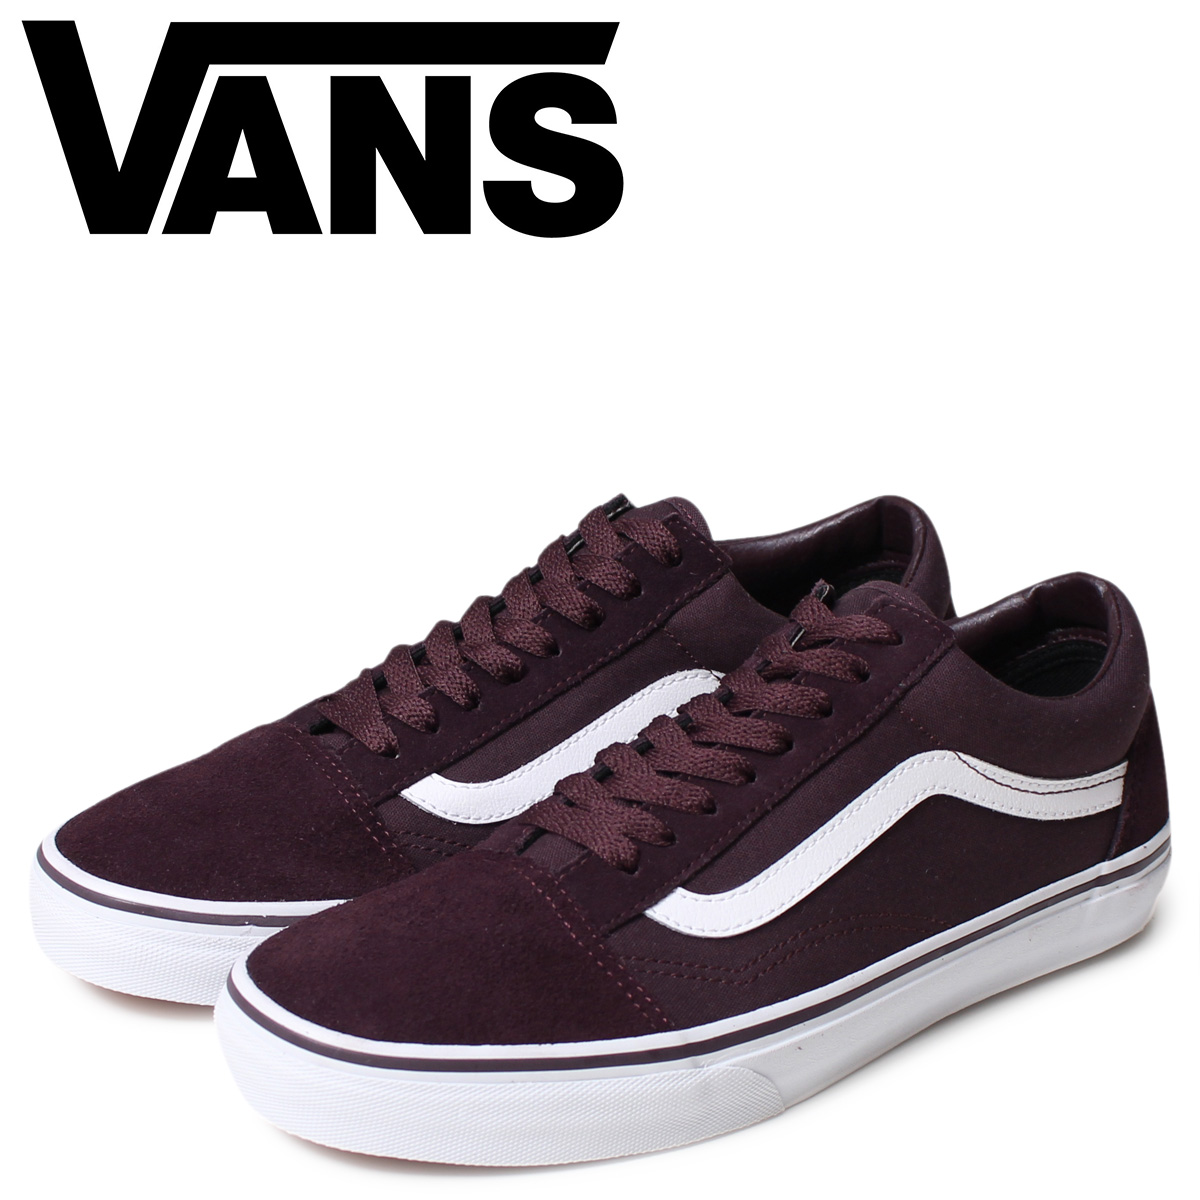 19d90b090e54 Whats up Sports  VANS old school sneakers men vans station wagons ...